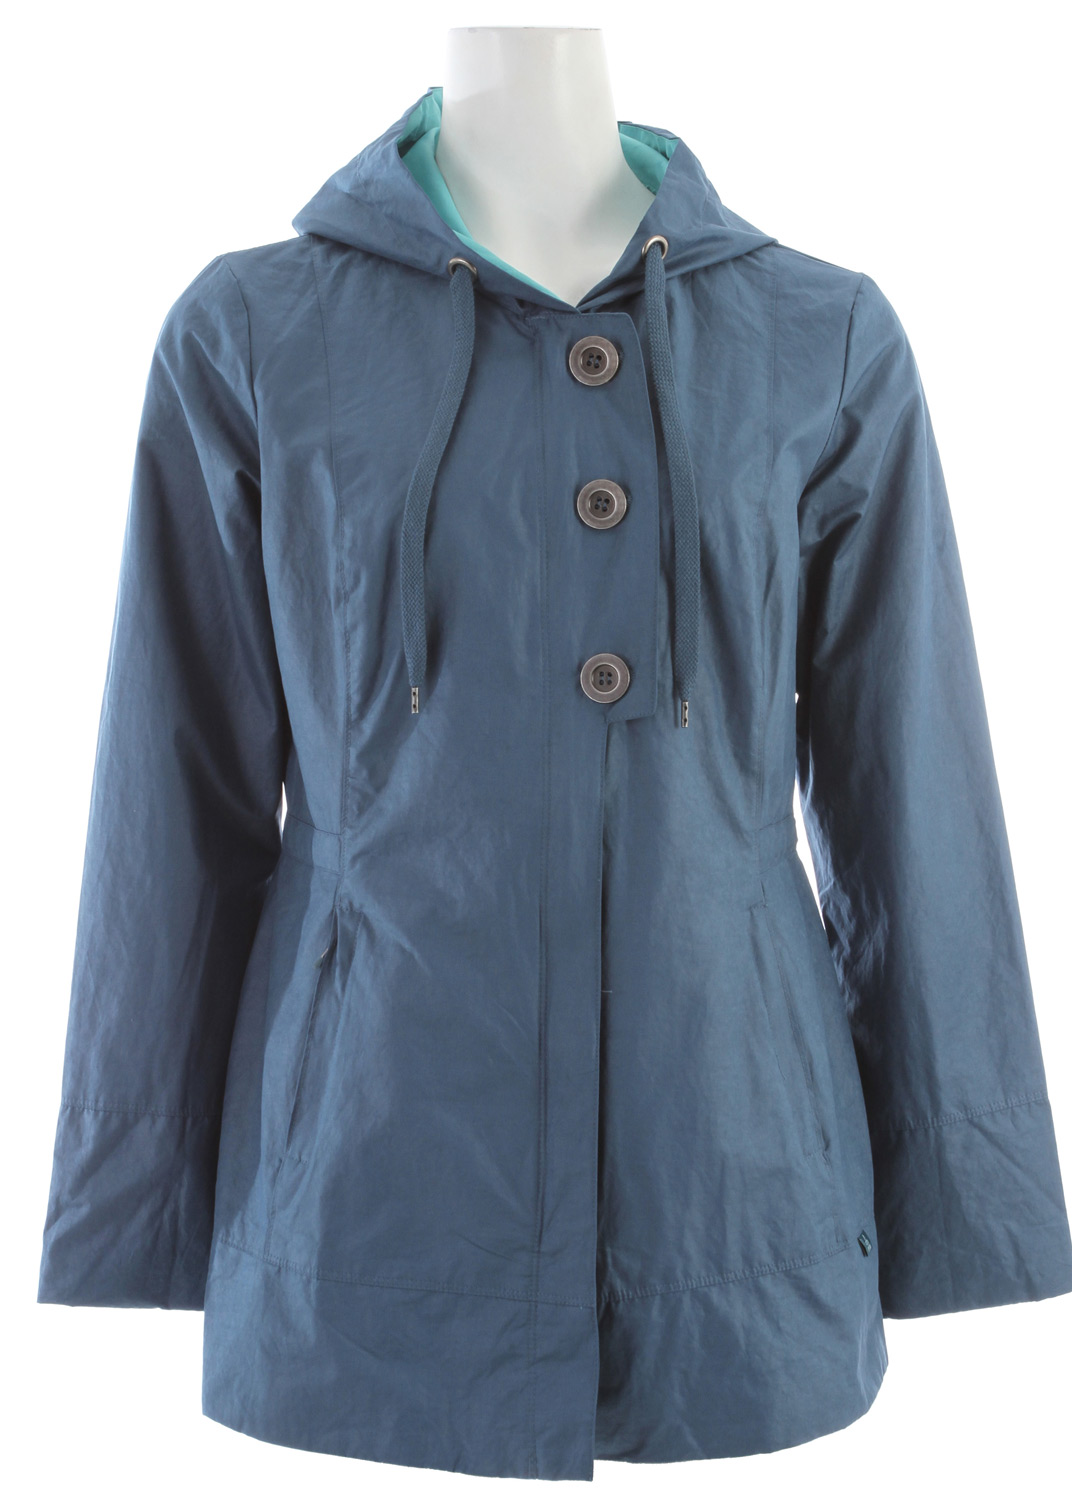 Key Features of the Prana Abby Jacket: 53% cotton/31% polyester/16% Nylon Lining: 100% polyester Performance coated cotton woven Lined in contrast with no insulation Button detail at center front flap with zipper underneath Front pockets with zippers Relaxed fit - $98.95